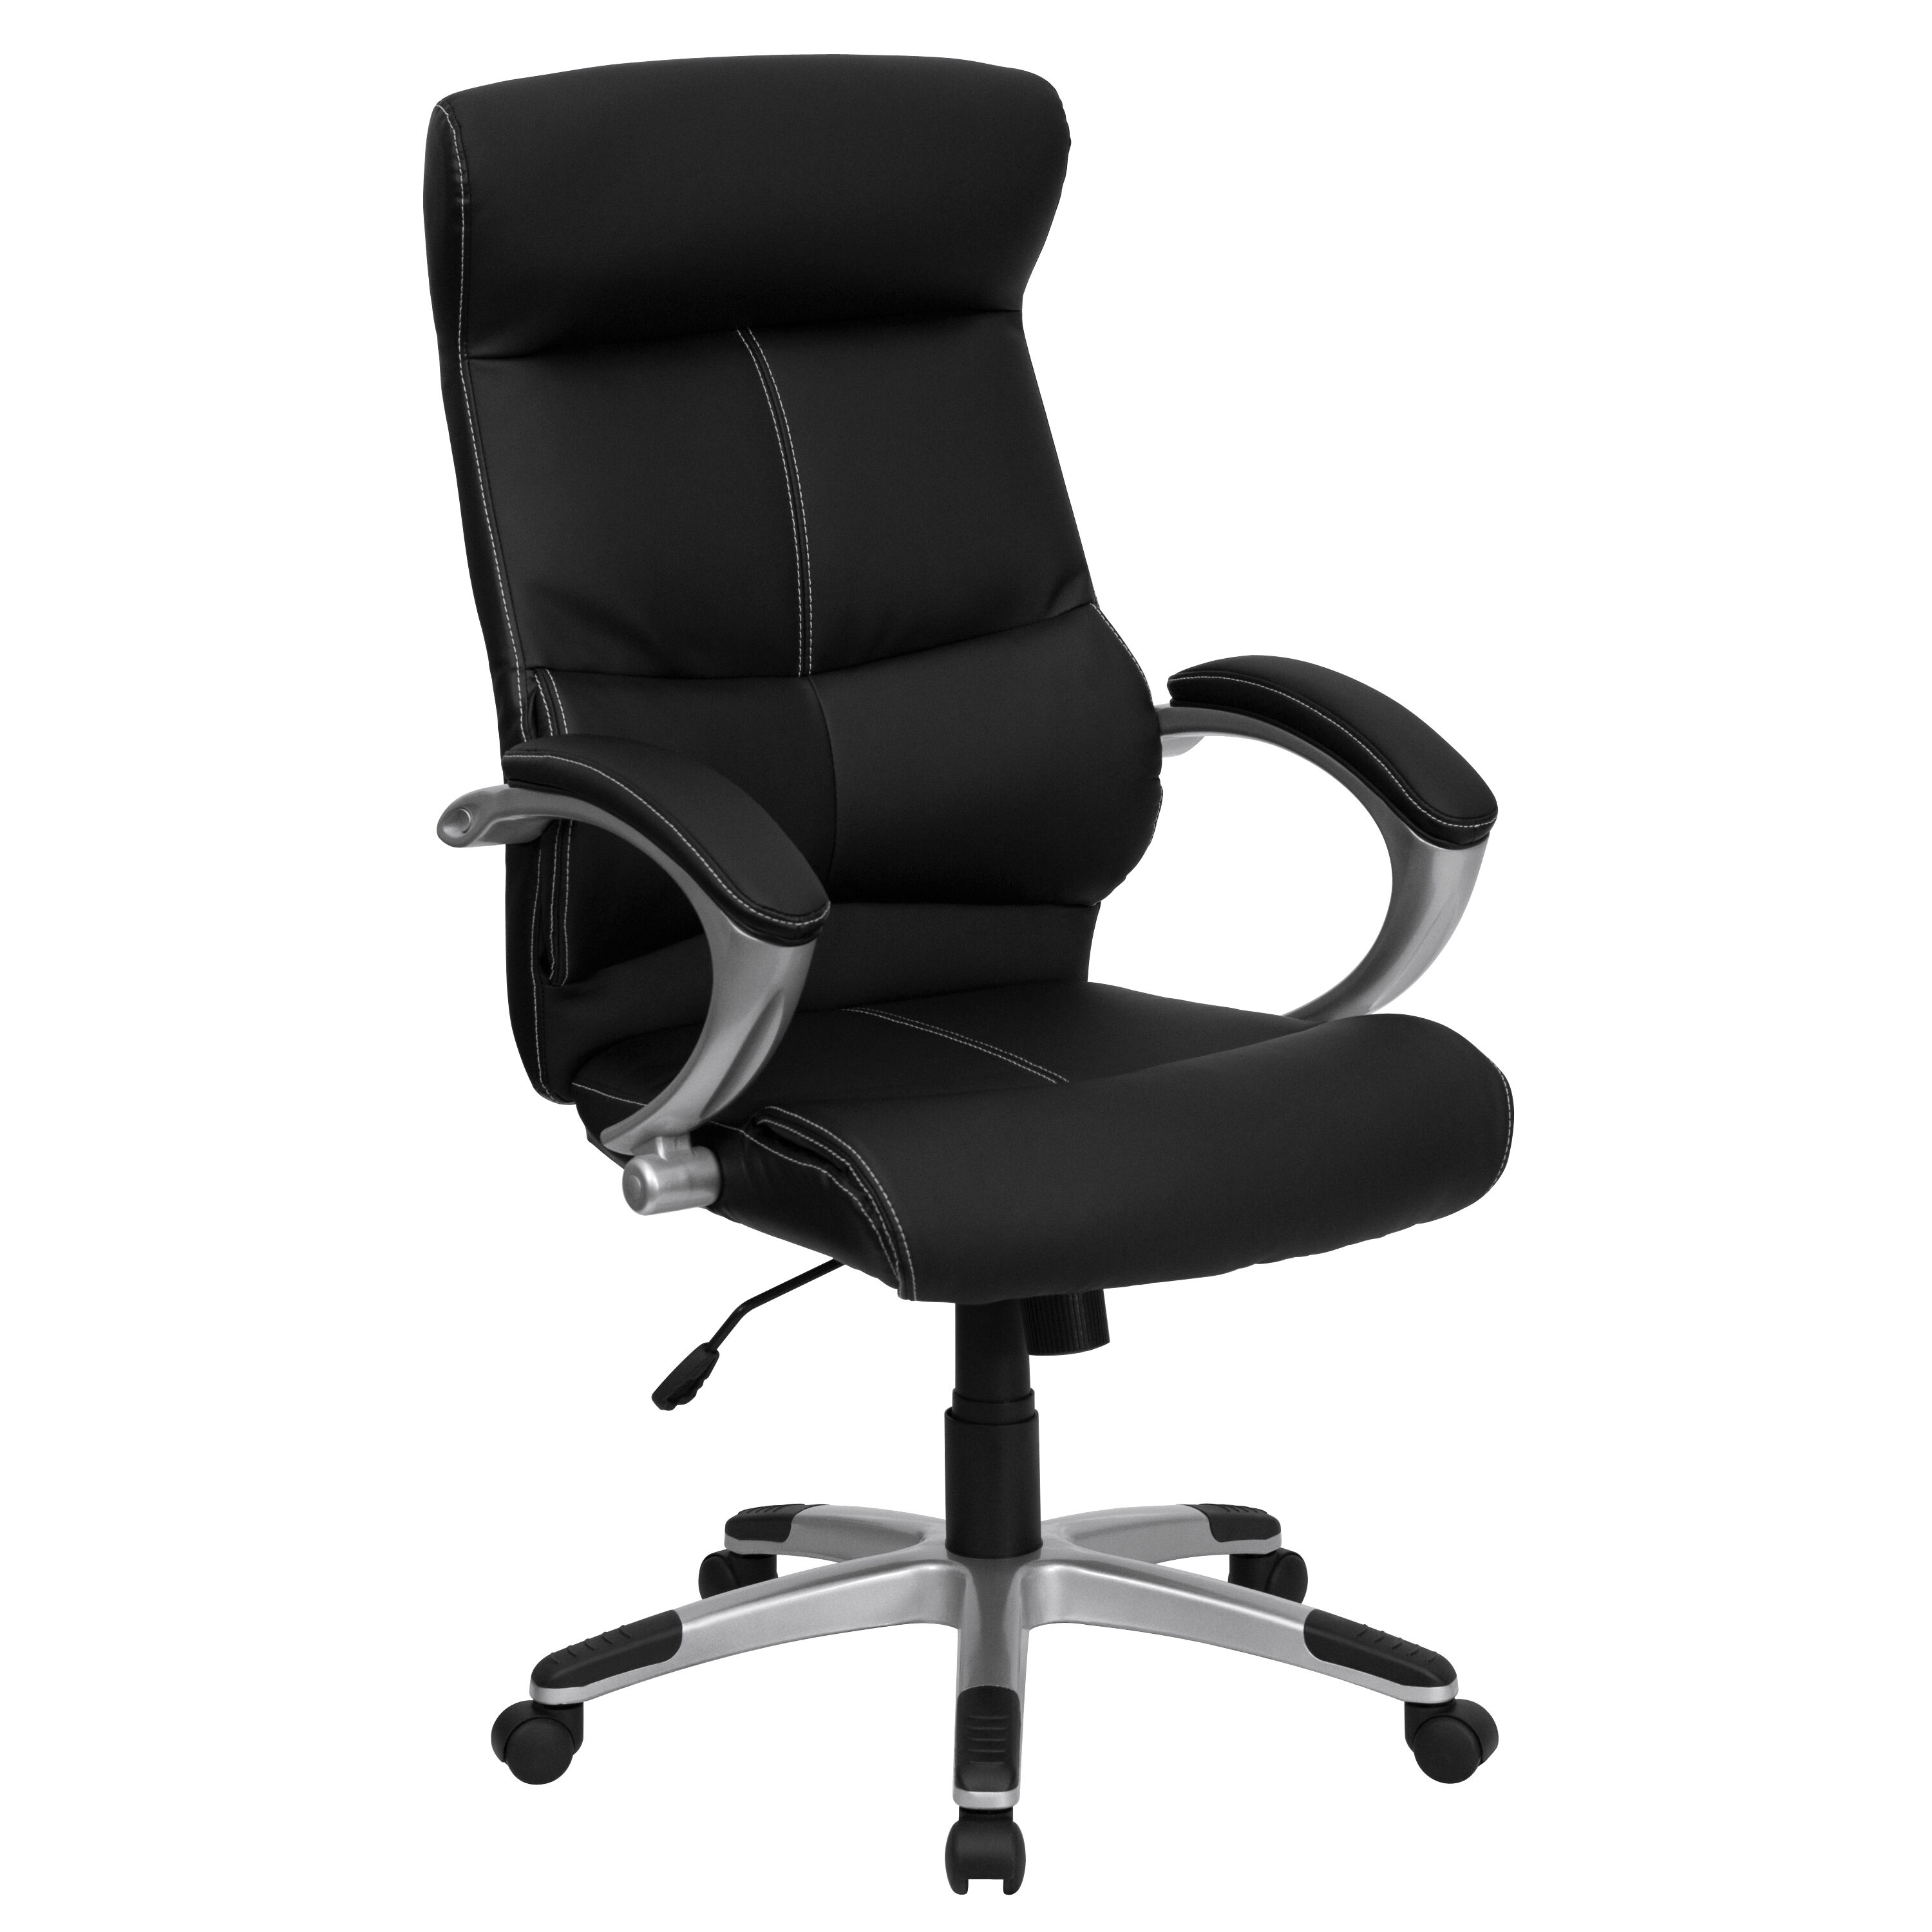 staples stacking chairs round banquet chair covers black high back leather h 9637l 1c gg